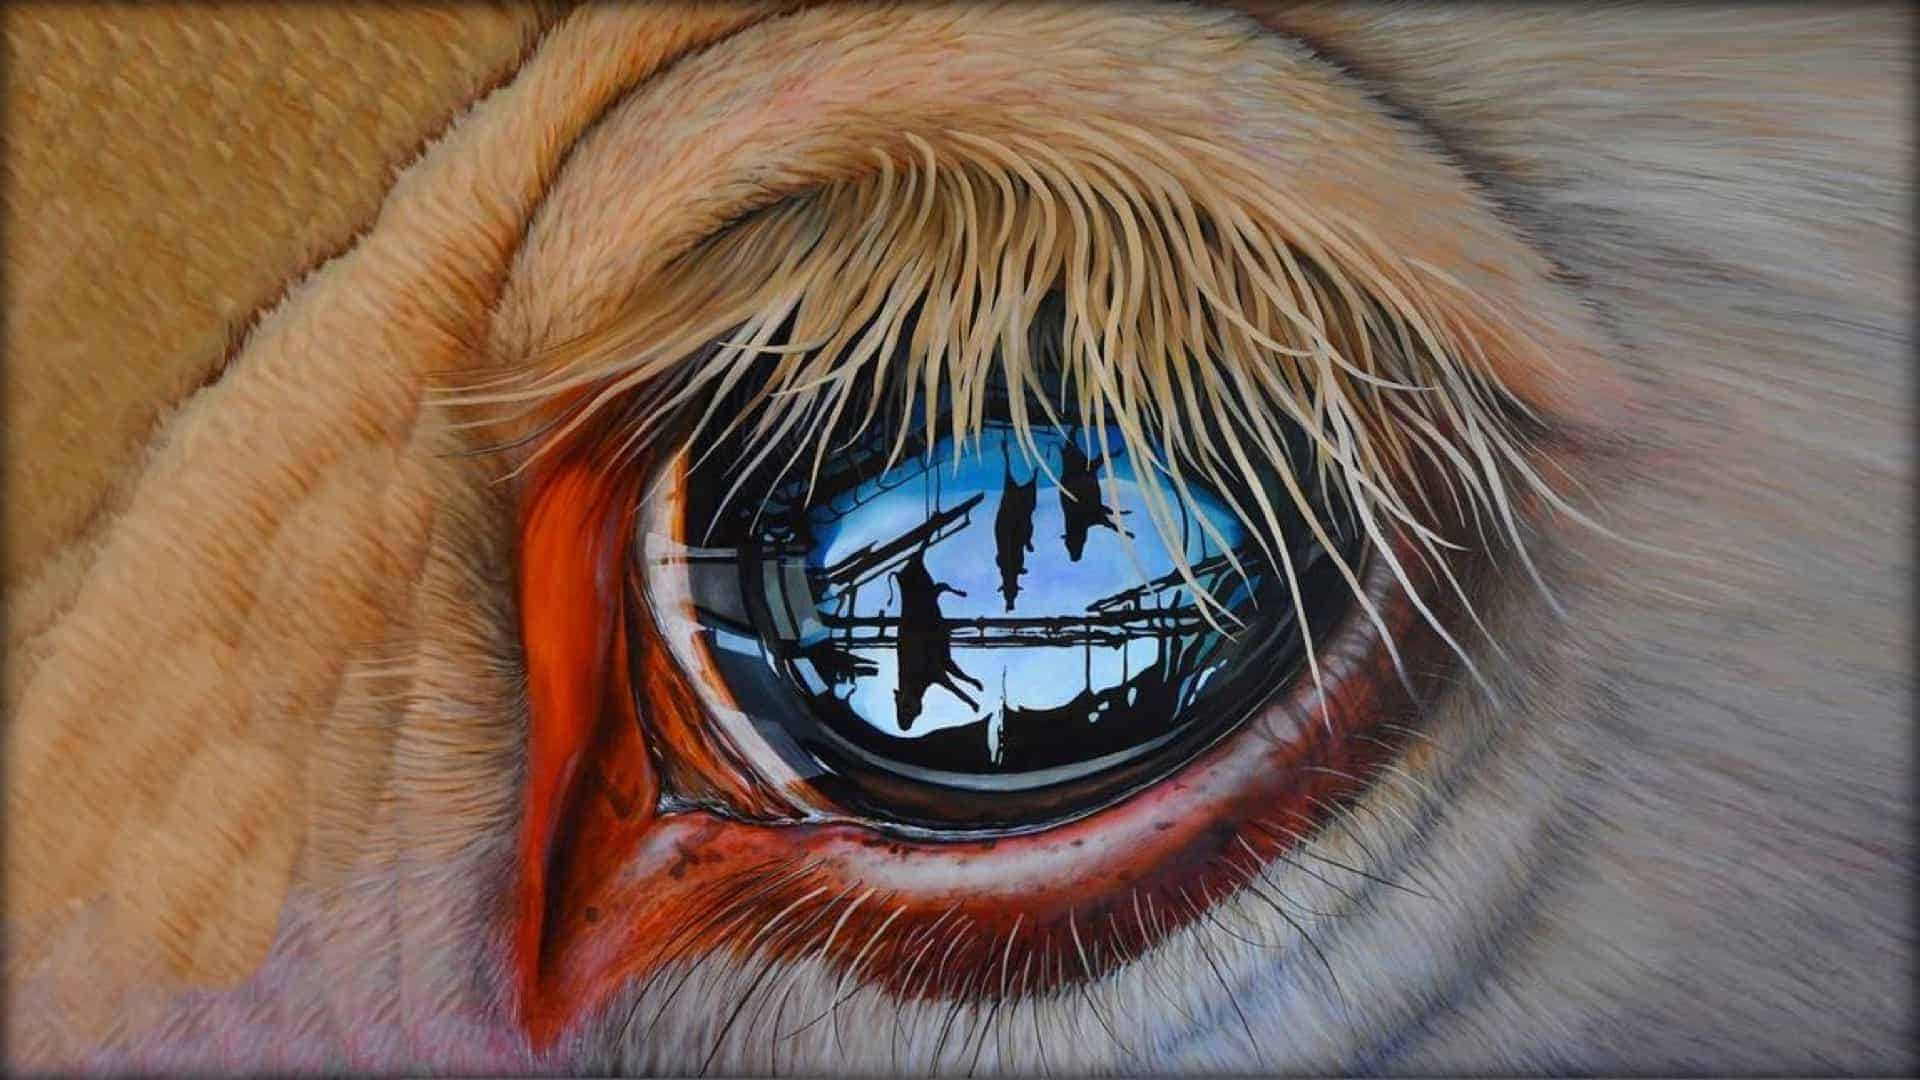 An extreme close-up of an animal's eye is shown. In the reflection of its cornea, multiple butchered animals can be seen. They are hanging from hooks by their back legs.